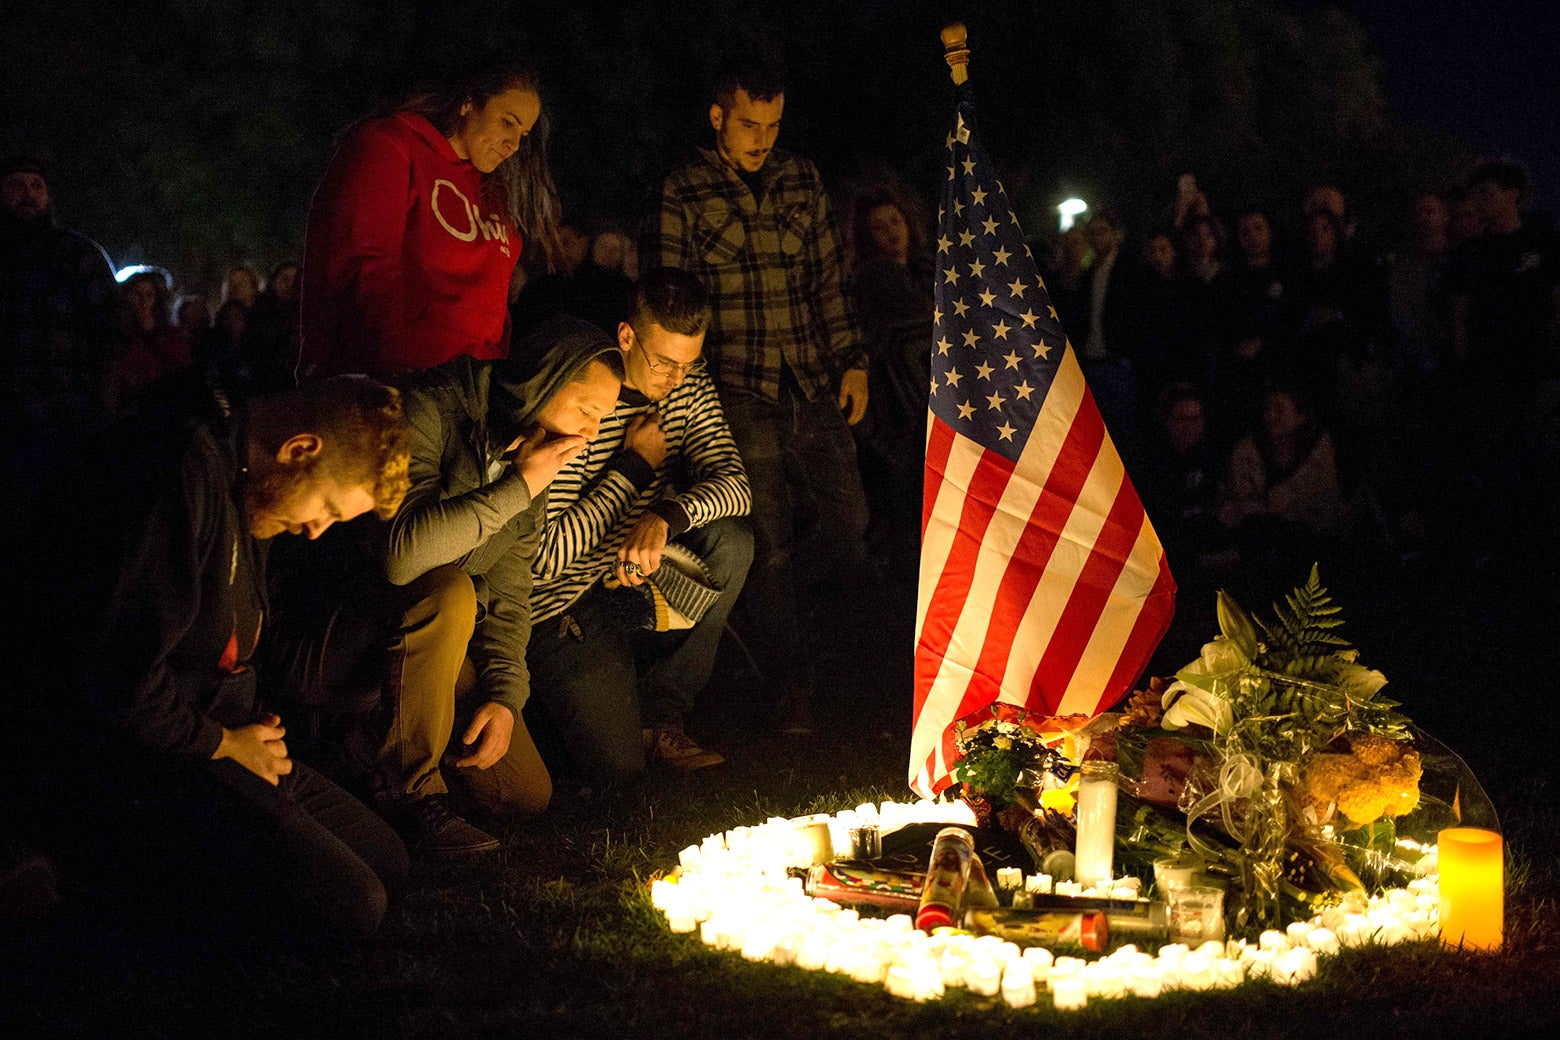 People kneel around an American flag and candles.